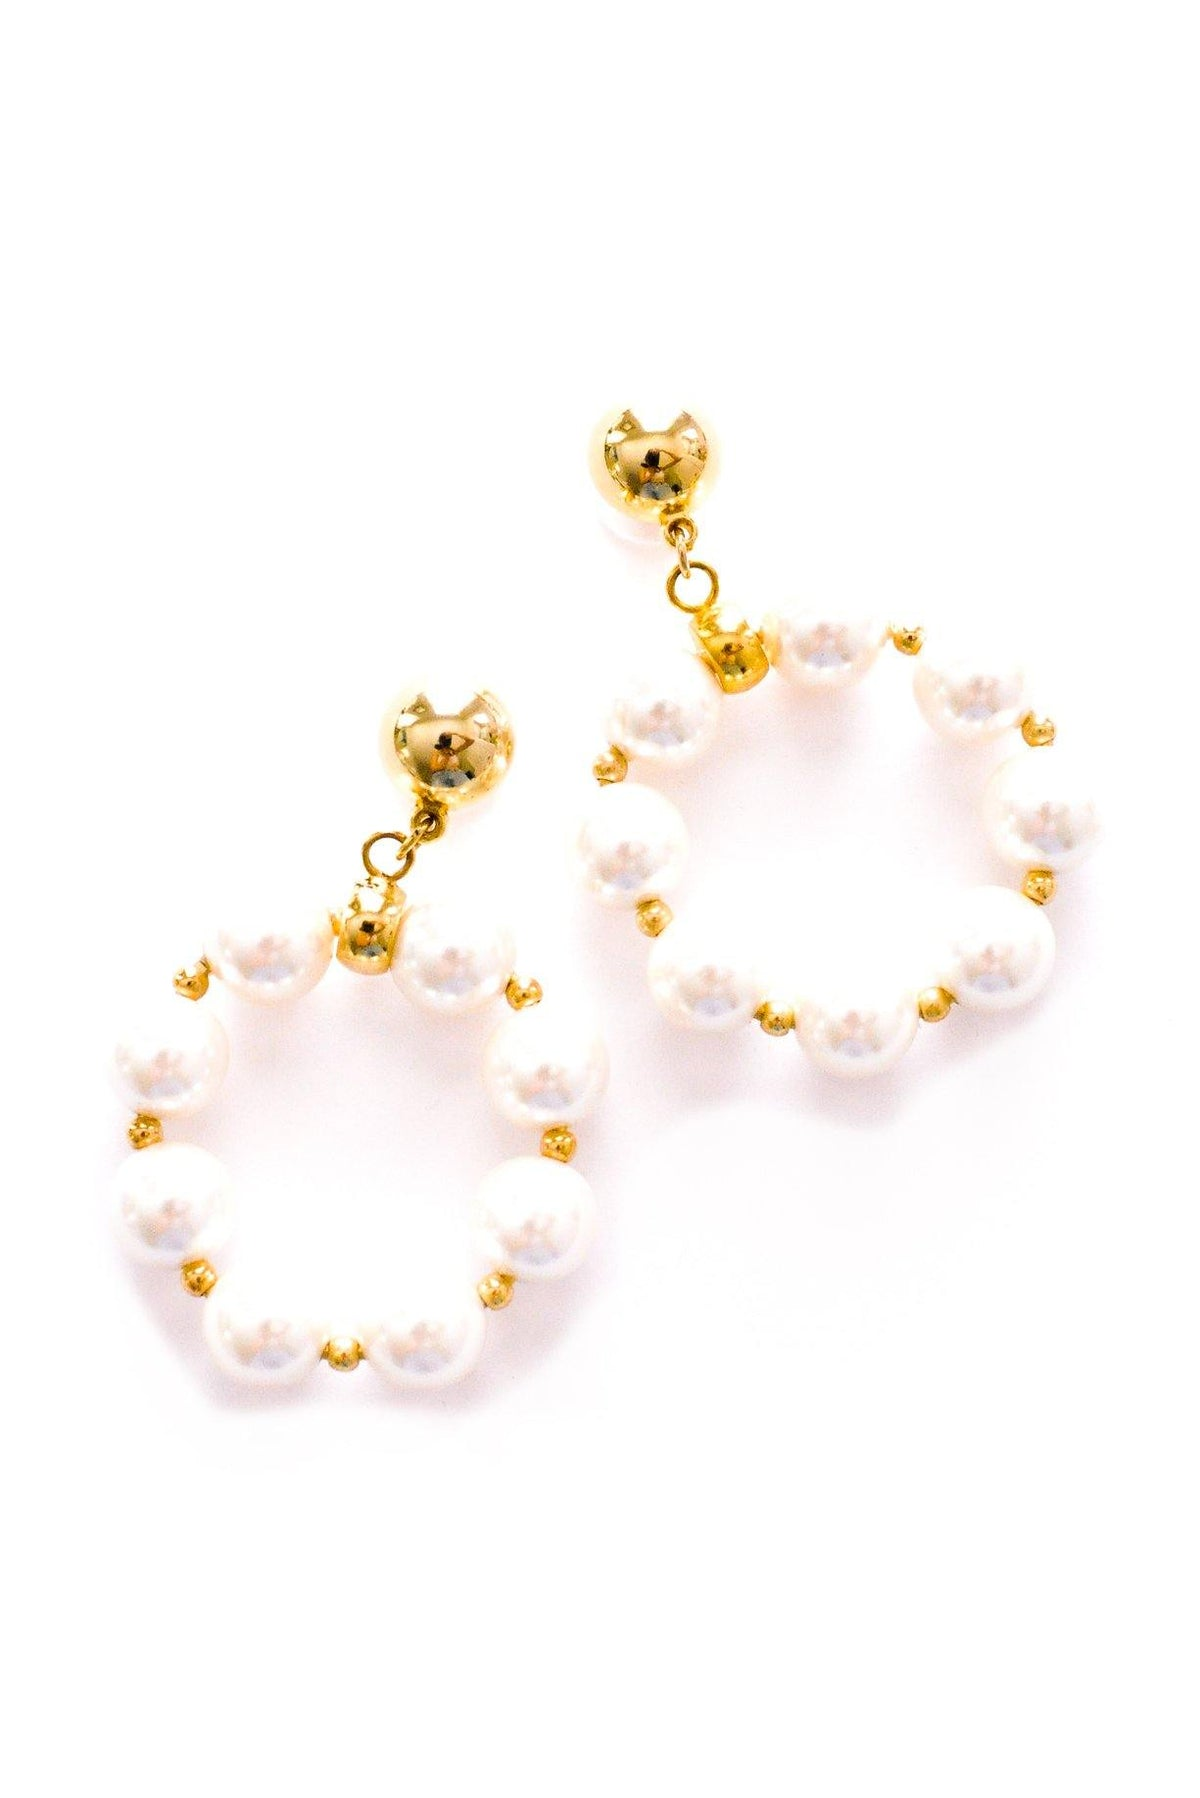 Vintage pearl statement hoop earrings from Sweet & Spark.